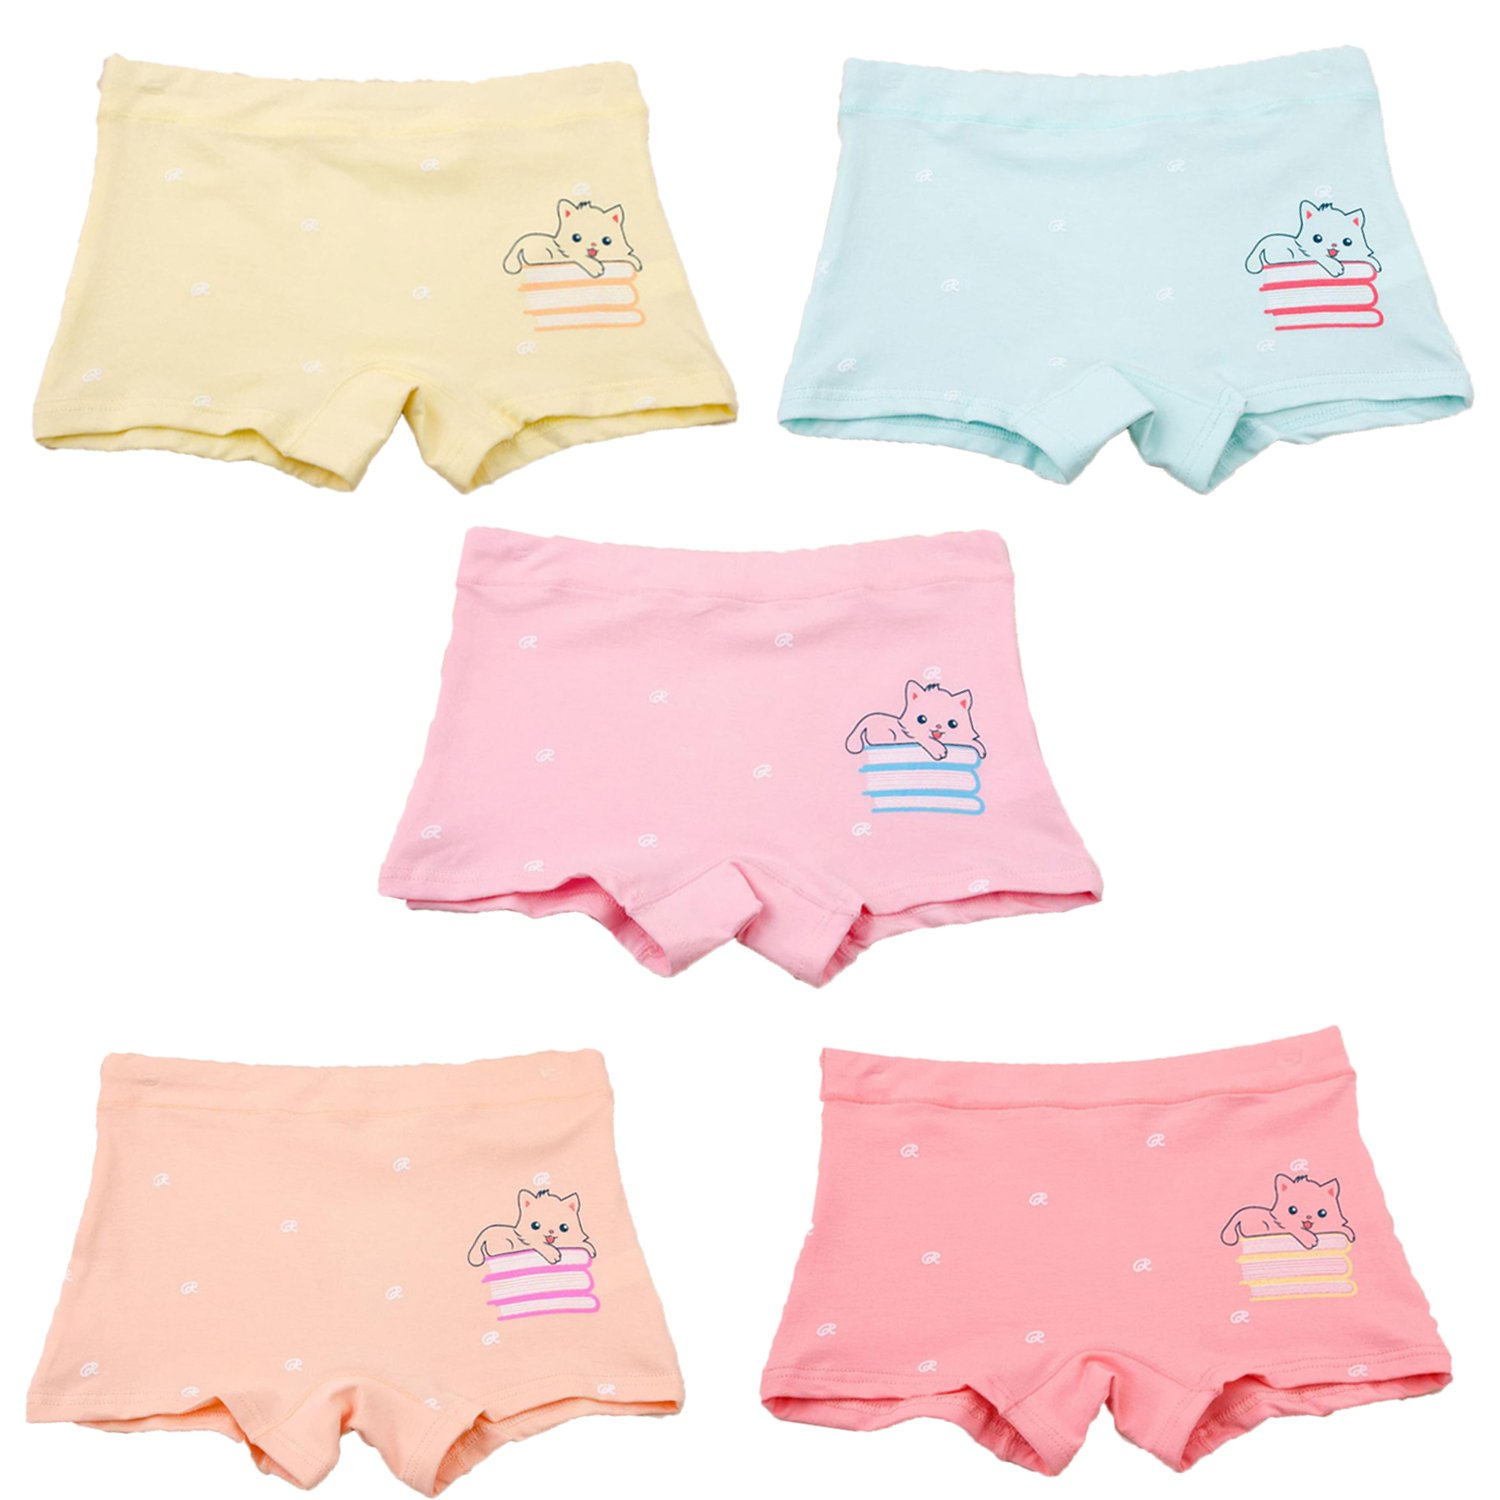 SYROSA Girls' Boyshort Knickers Children Briefs Cotton Underwear 5pcs Panties 6-8 Years